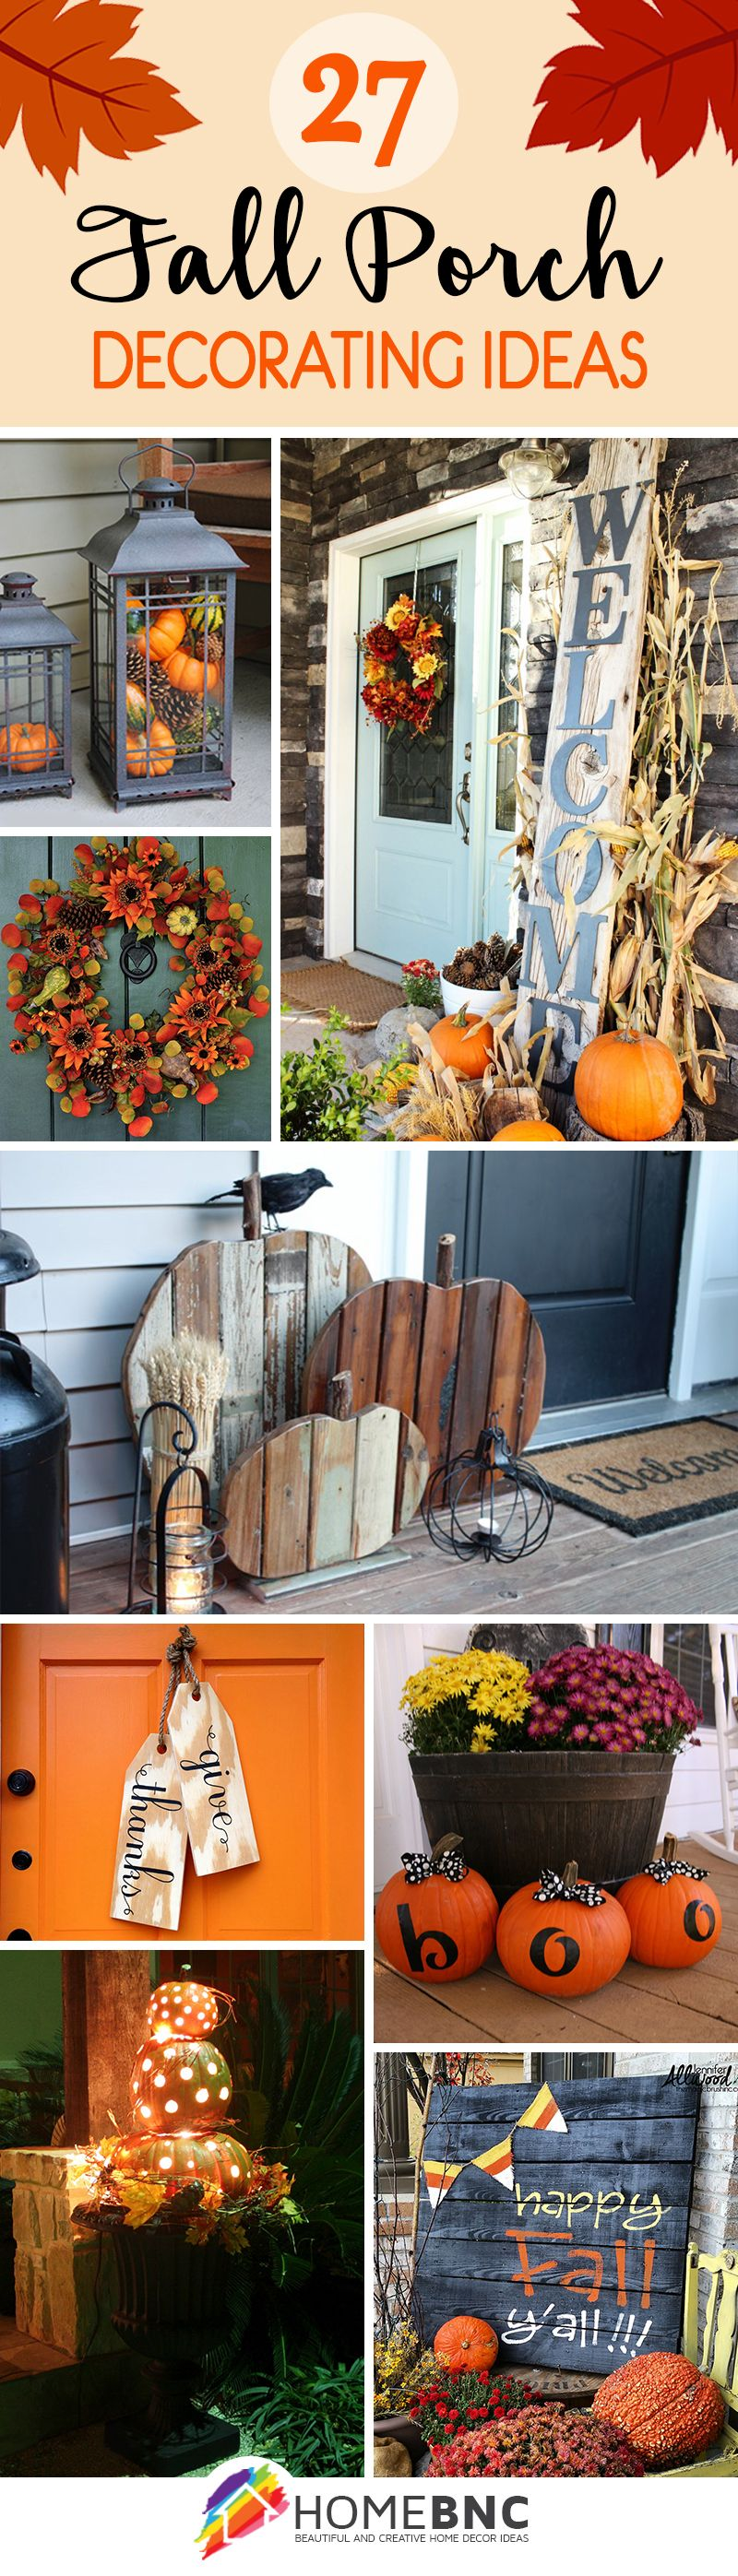 27 Creative Fall Porch Decorating Ideas to Make Yours ...